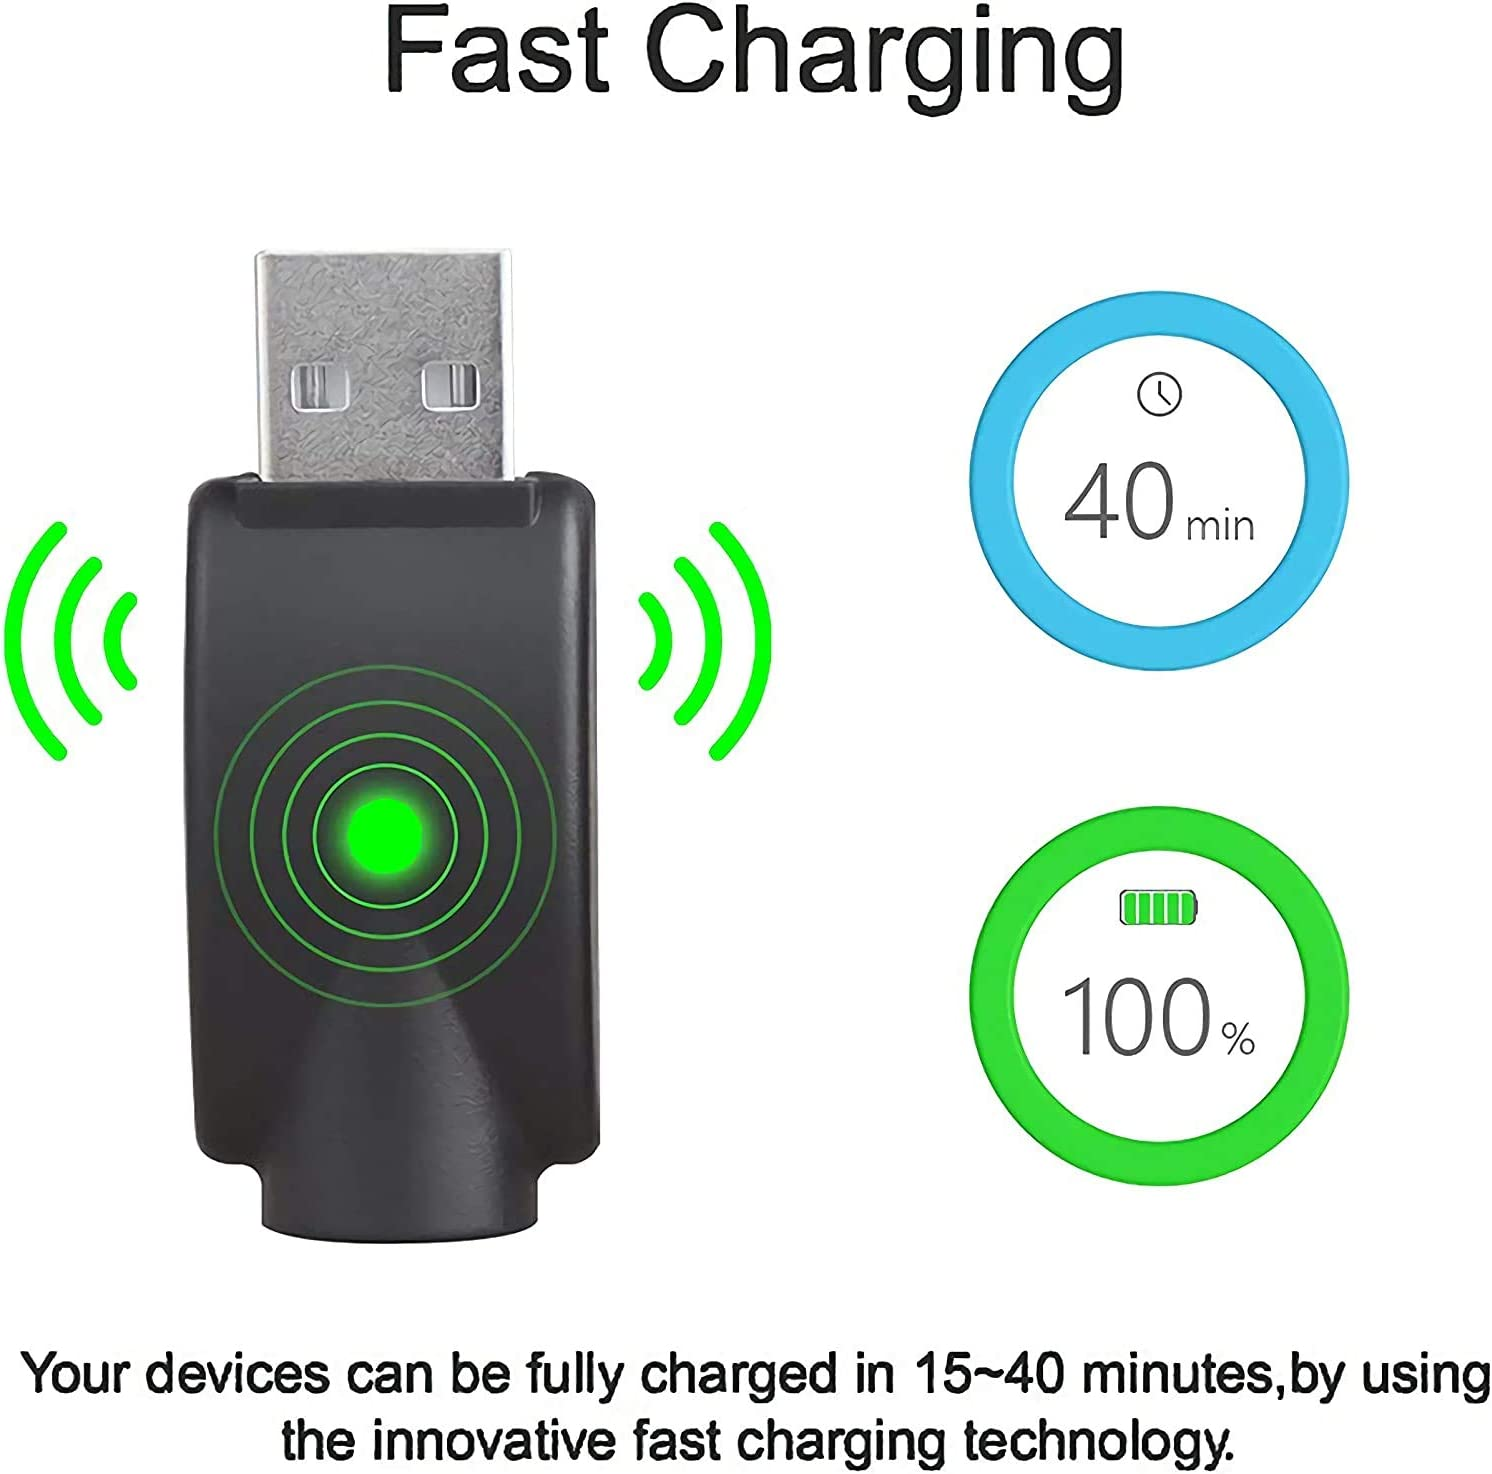 Jar-nan 【2-Pack】 USB Smart Charger Cable,Wireless Soldering Iron Charging Adapter,LED Indicators Overcharge Protection Smart Wireless USB Charger